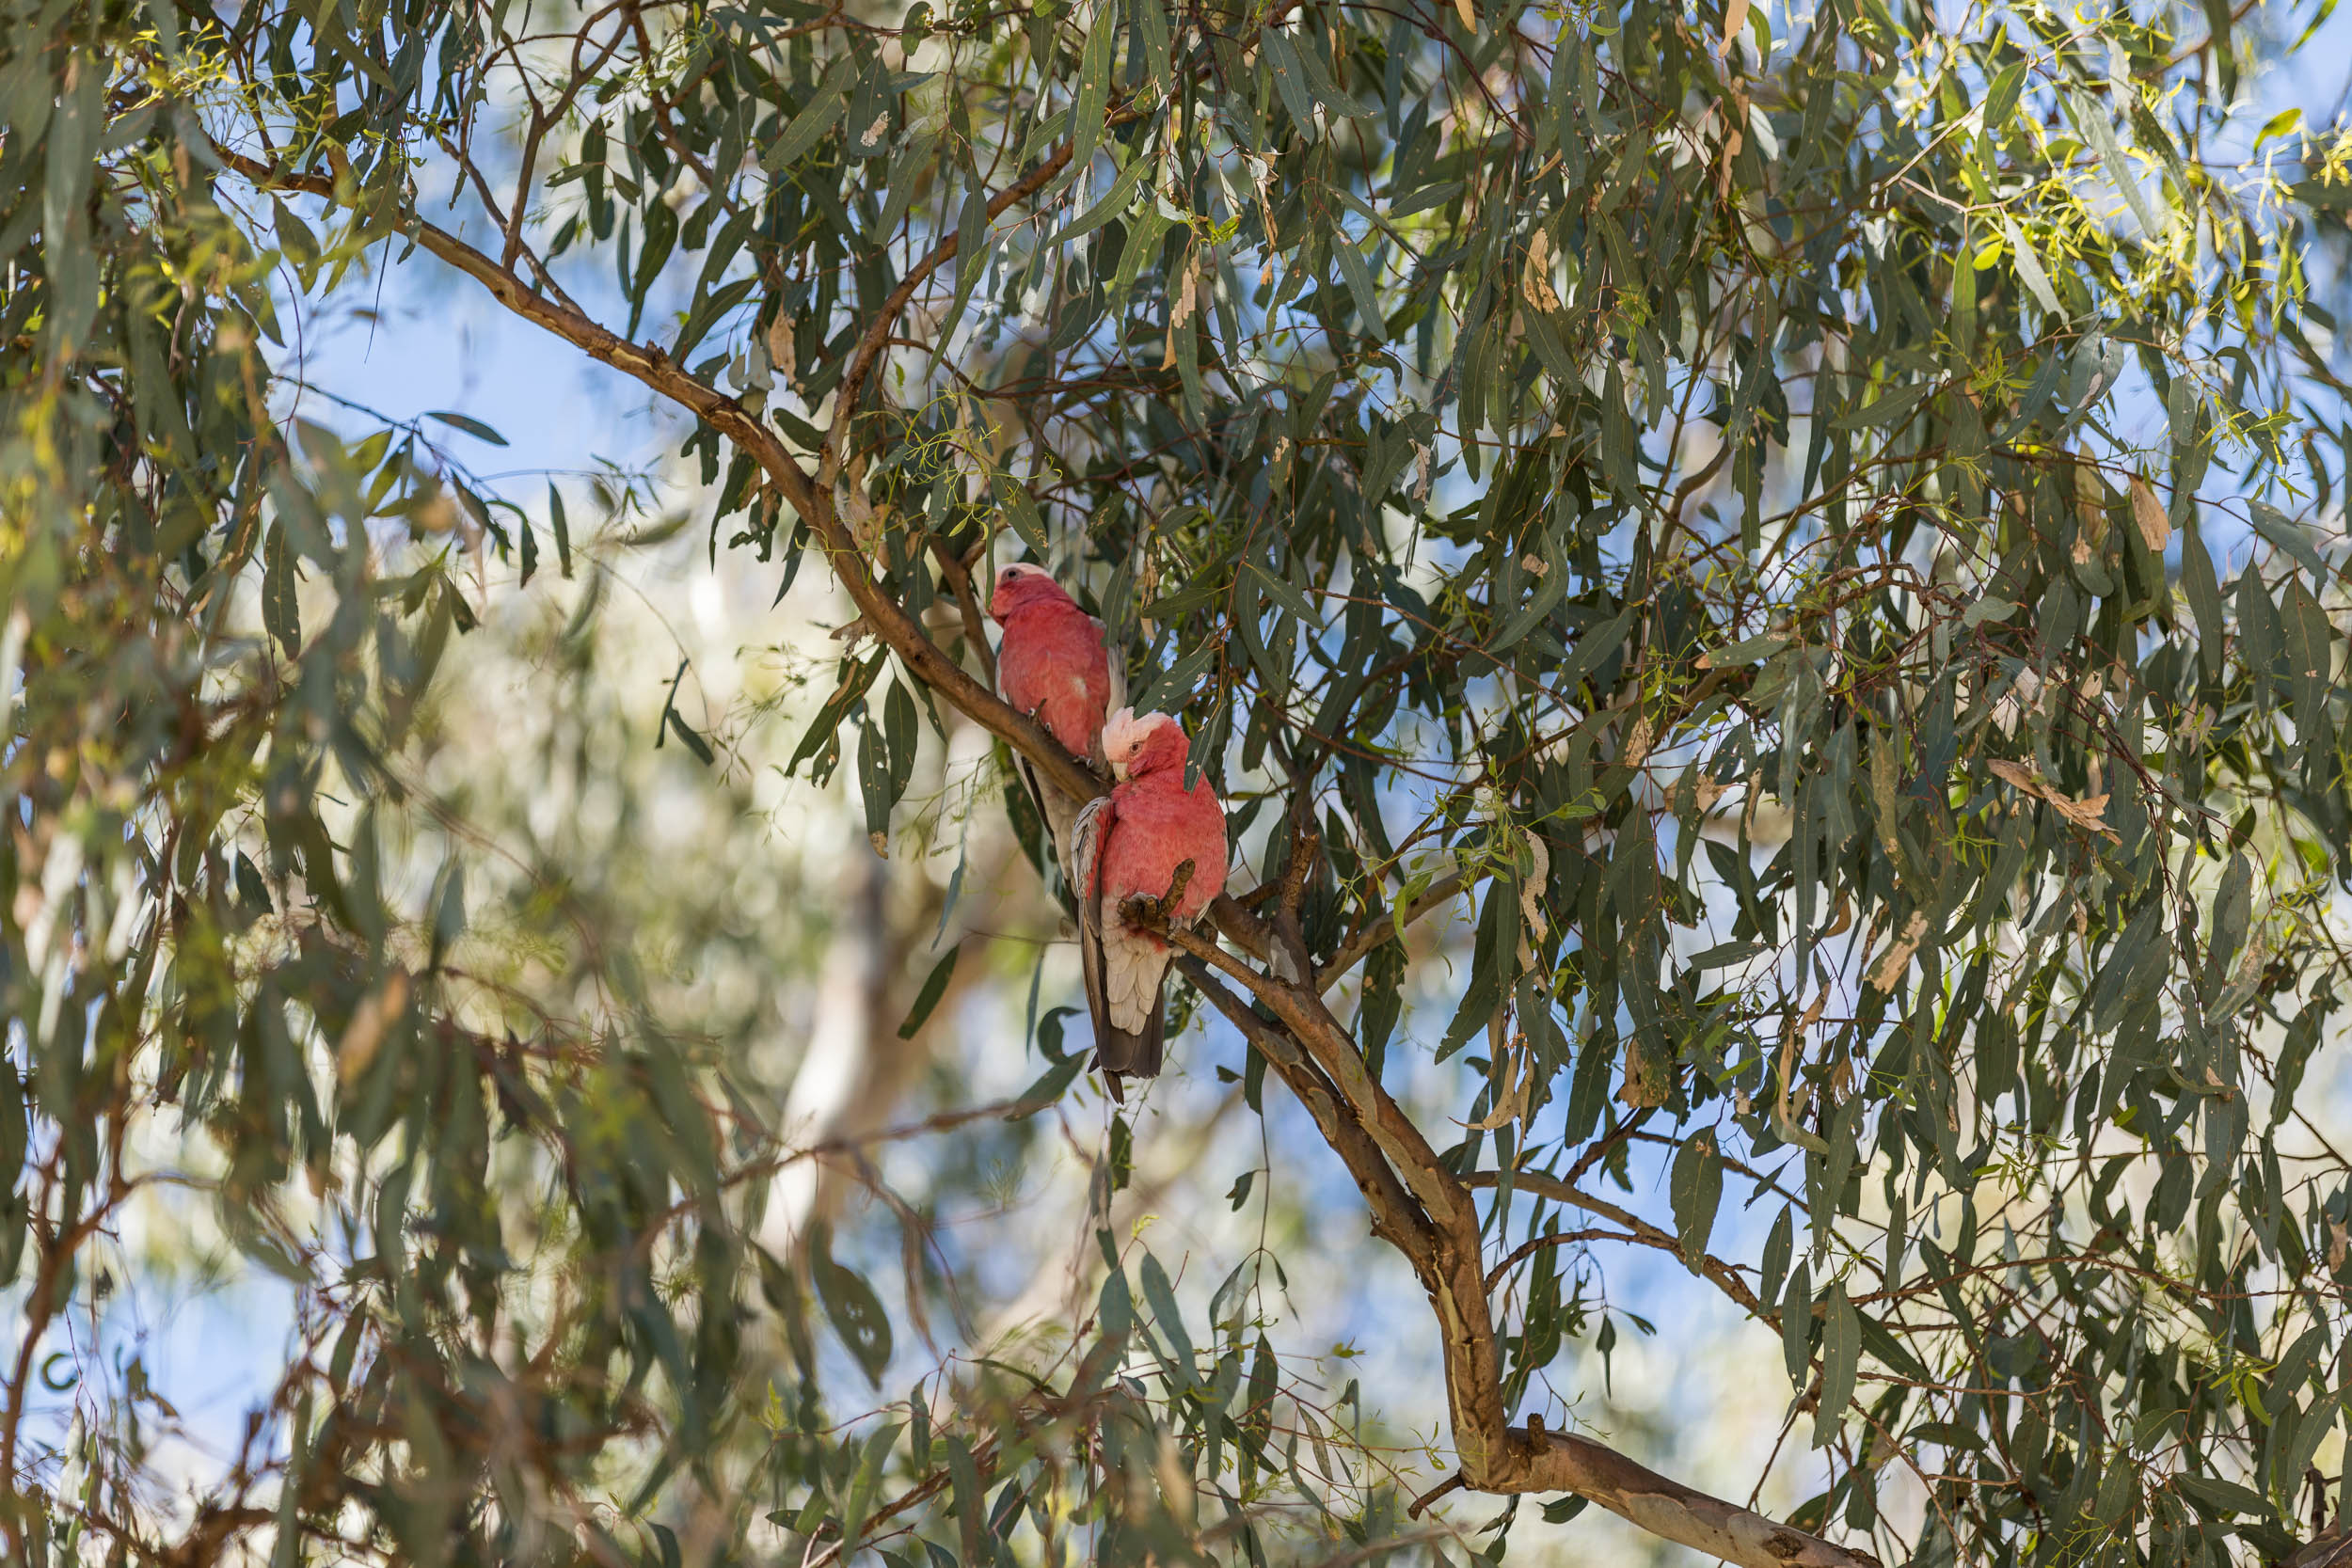 Galahs in the Narrandera Flor anad Fauna Reserve